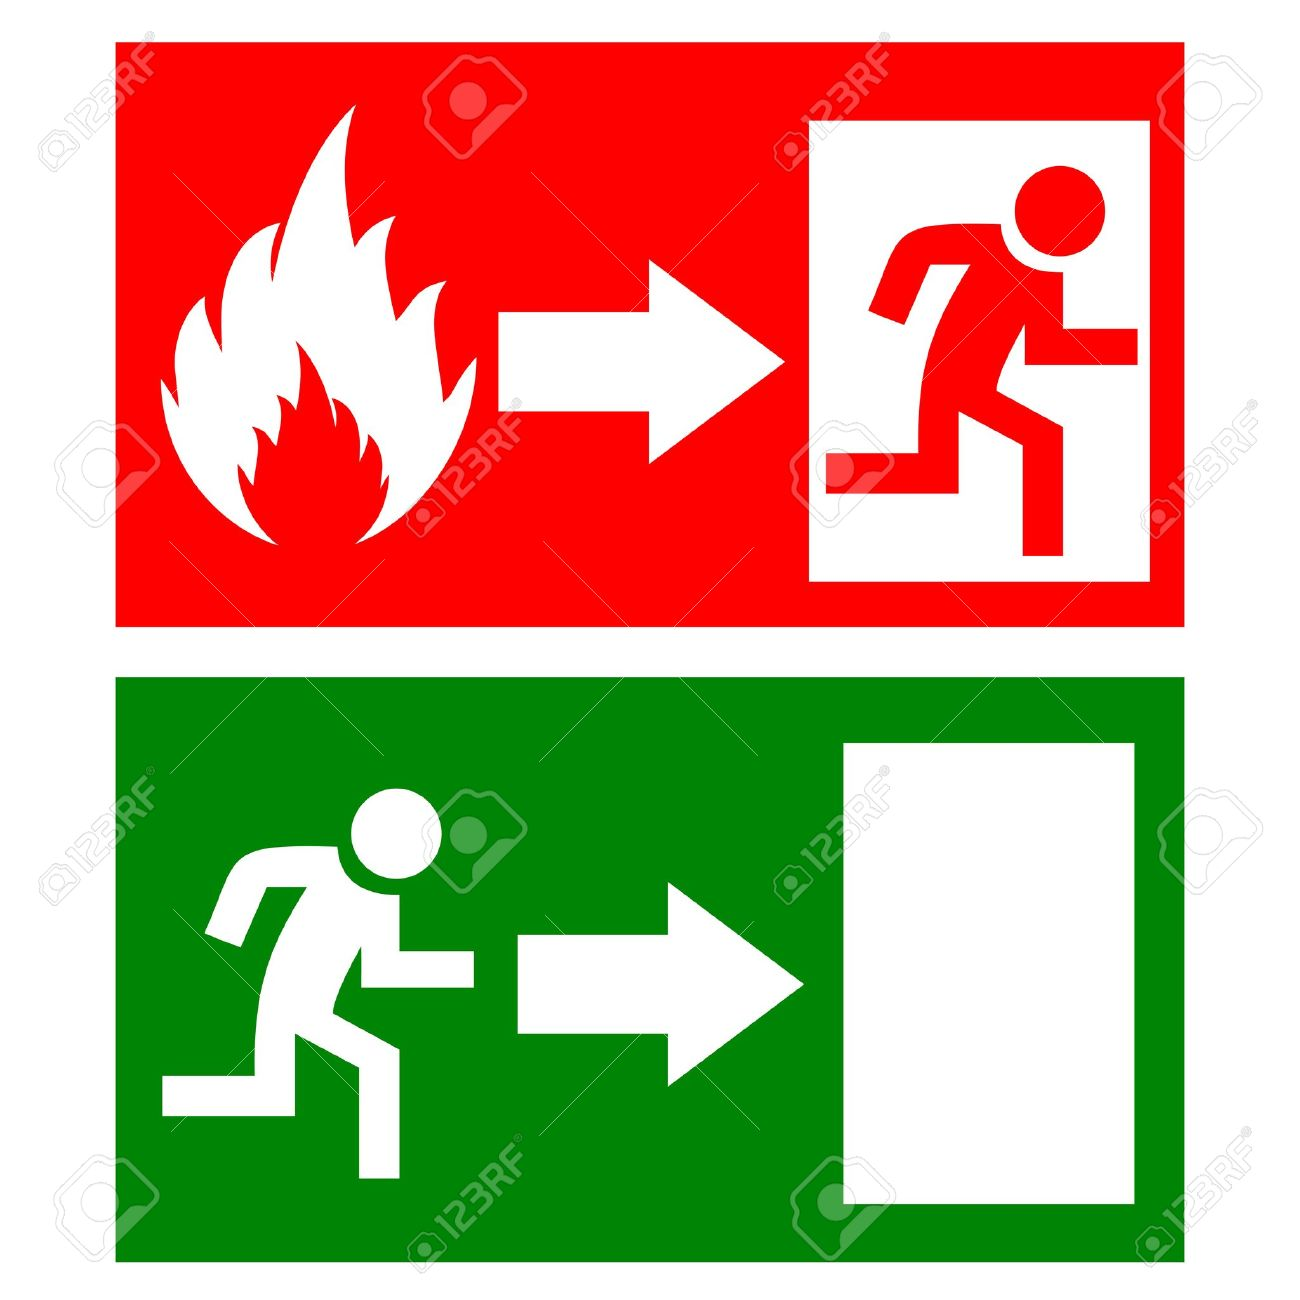 Pencil and in color. 911 clipart fire emergency